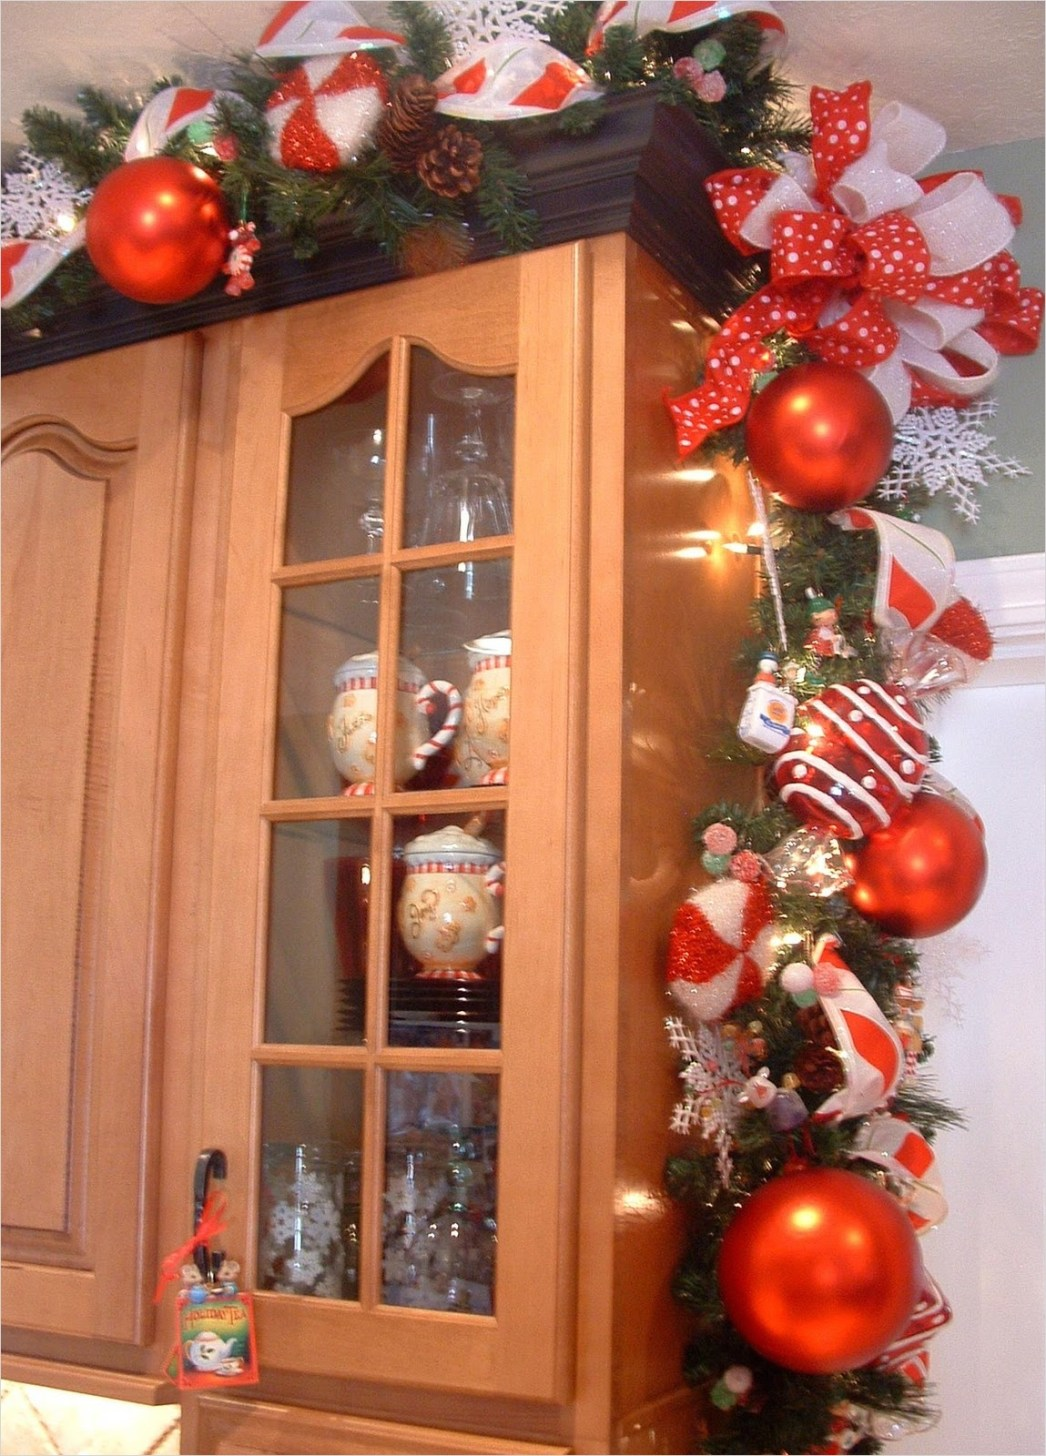 42 Awesome Kitchen Christmas Decorating Ideas 73 House Of Decor Christmas Décor for the Kitchen 1